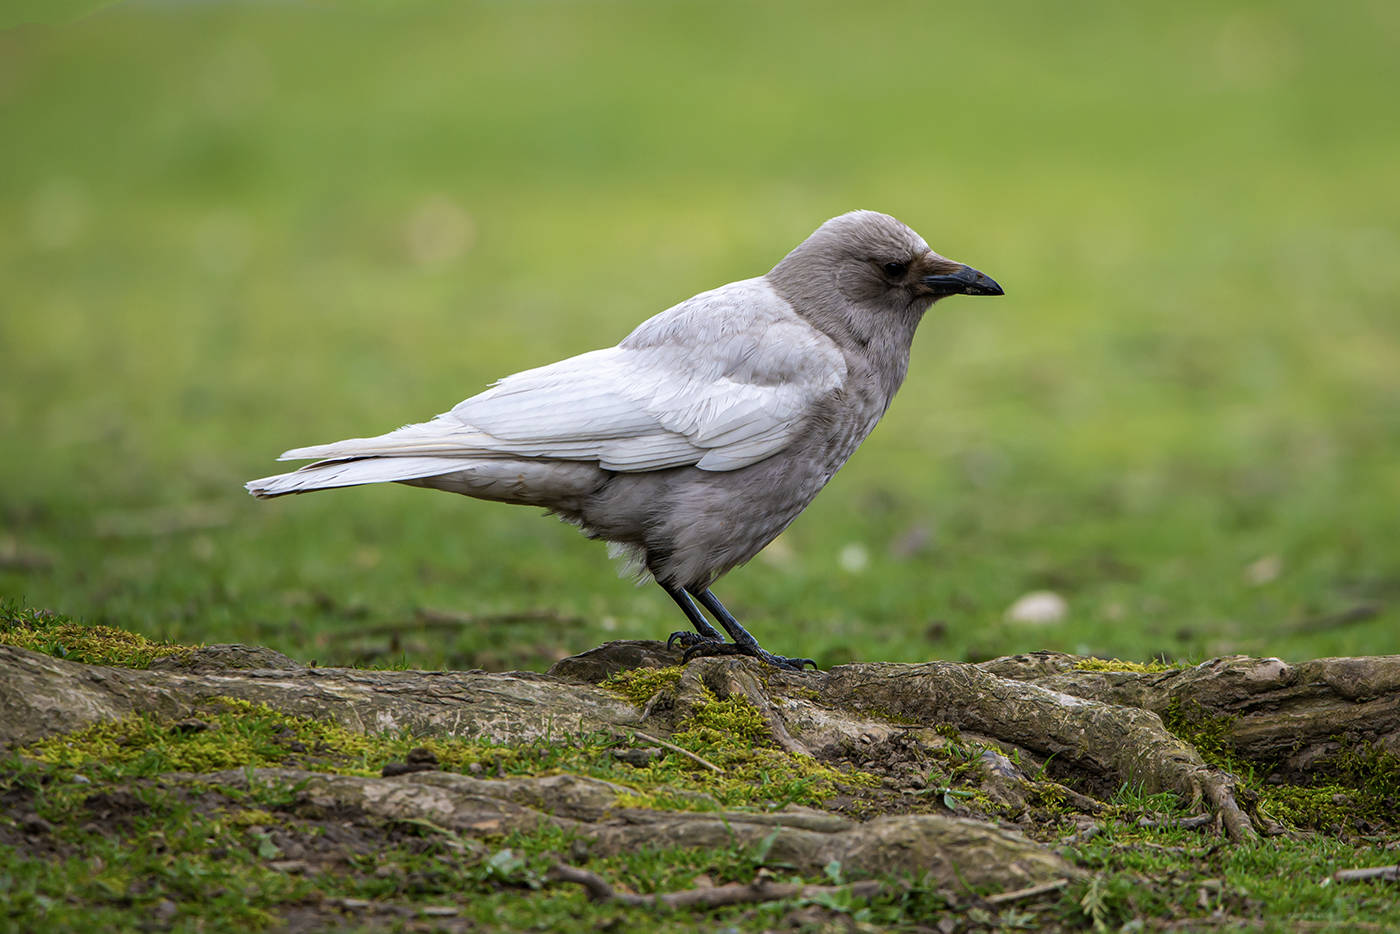 Chilliwack's resident leucistic crow that lives in or near Sardis Park, photographed on April 7, 2020. (William Snow photo)